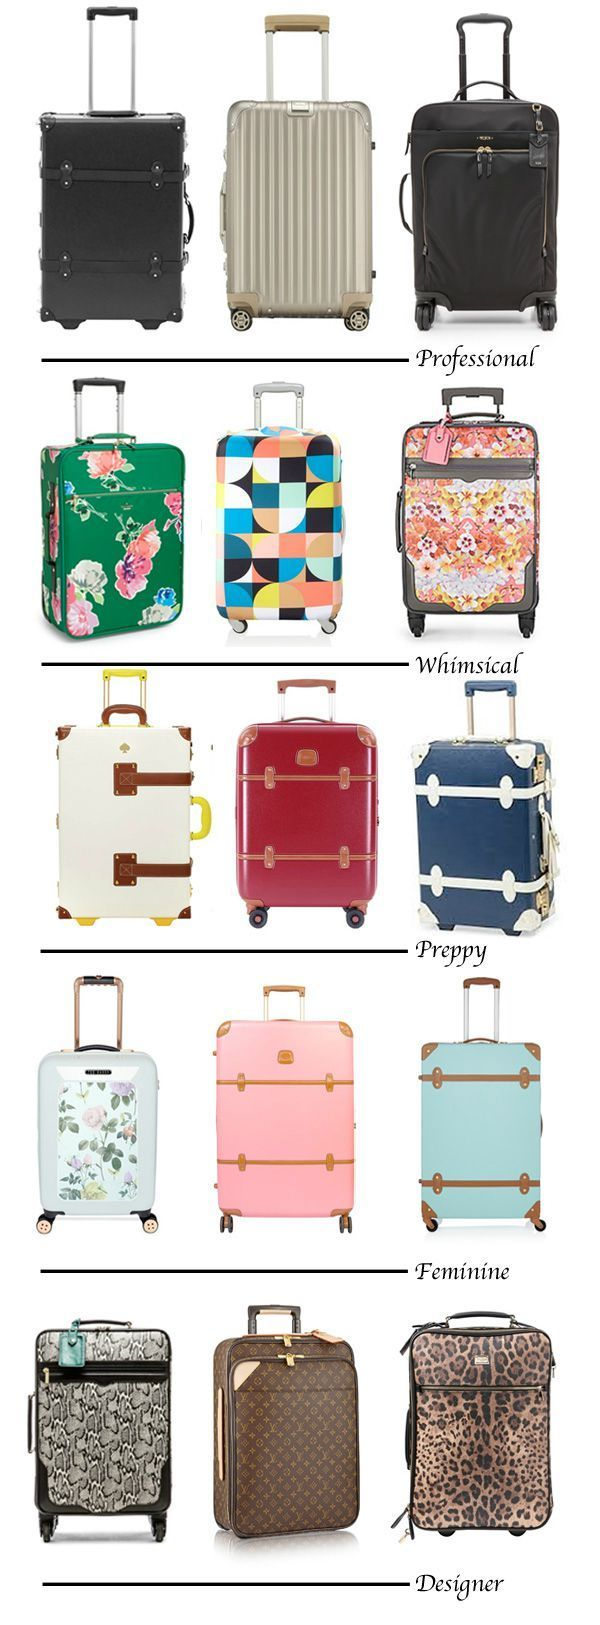 102 best Luggage and Bags images on Pinterest | Travel, Suitcases ...